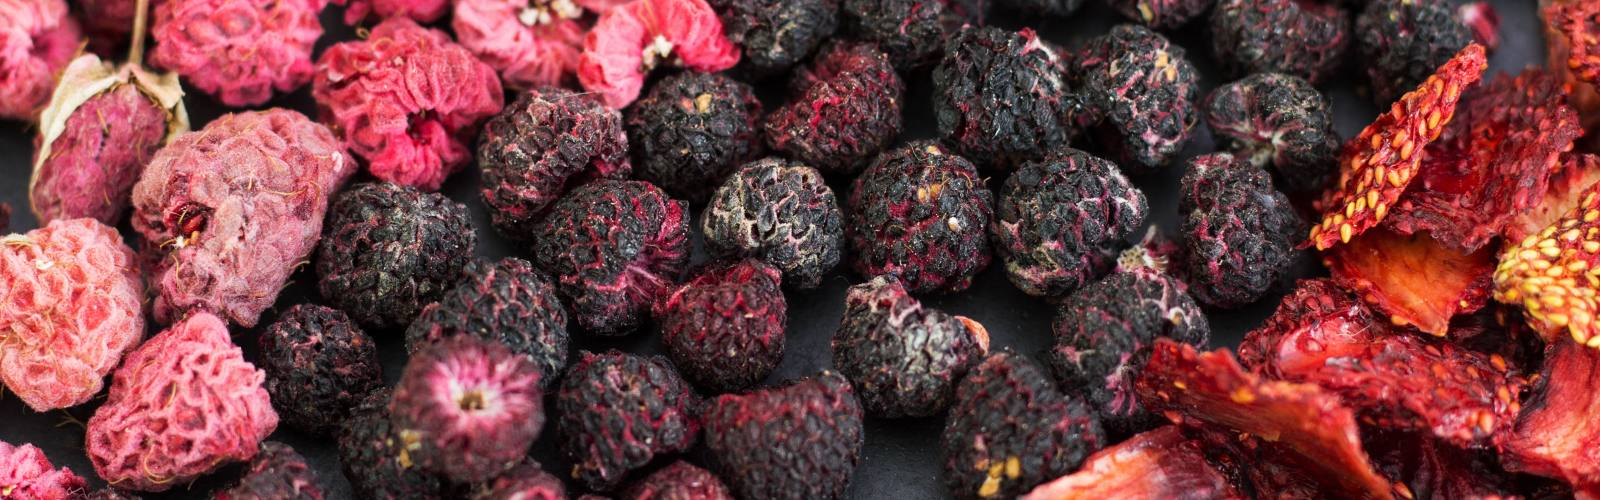 Easily foraged foods to dry for winter stores